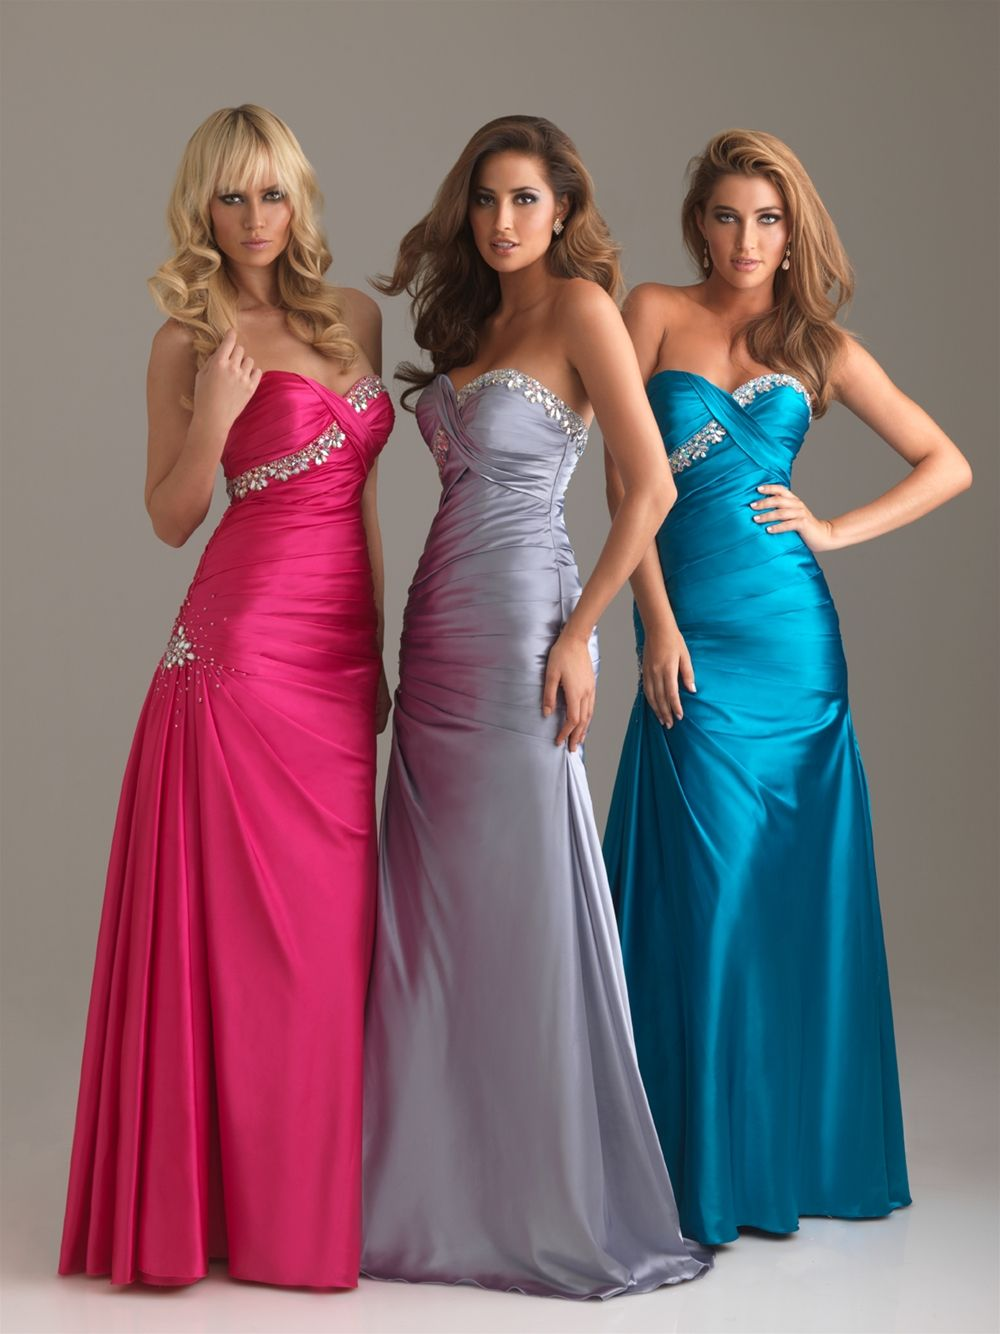 Best Friends matching for prom? OH YEAH | Prom. | Pinterest | Prom ...